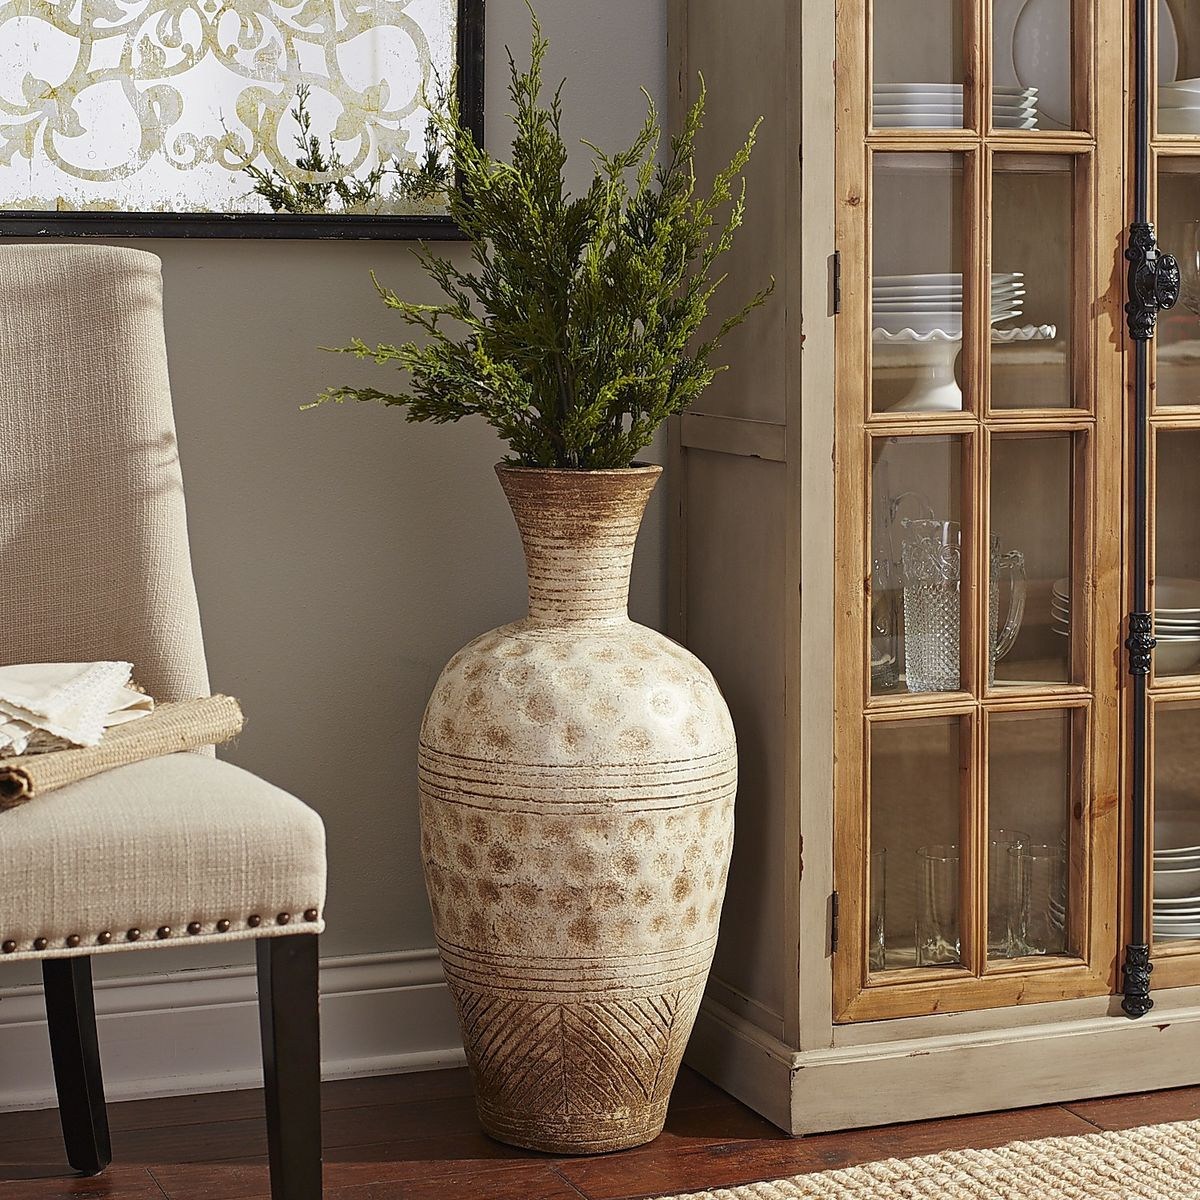 10 Amazing Tall Floor Vases For Living Room